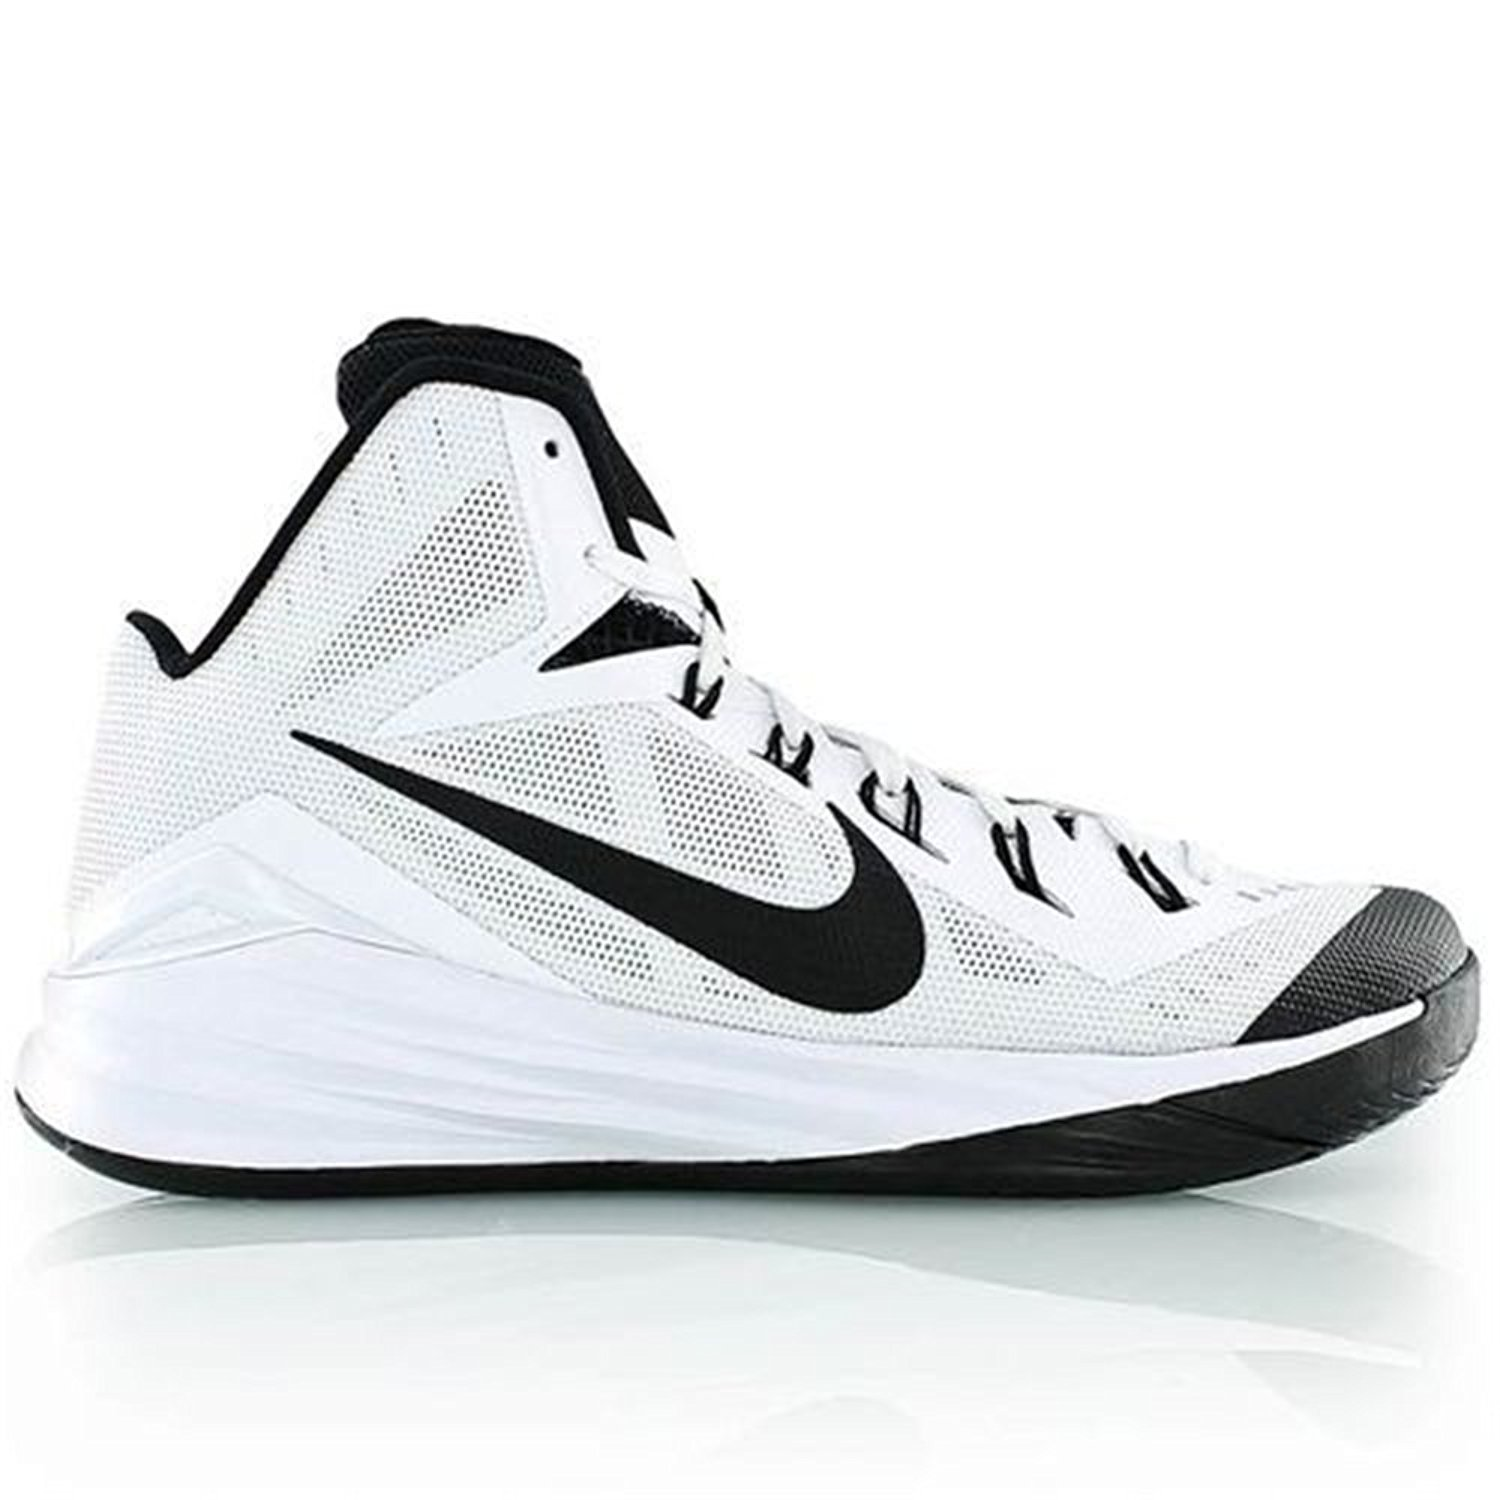 2f41fb187712 Get Quotations · Nike Hyperdunk 2014 Lunar Men Basketball Shoes NEW white  black